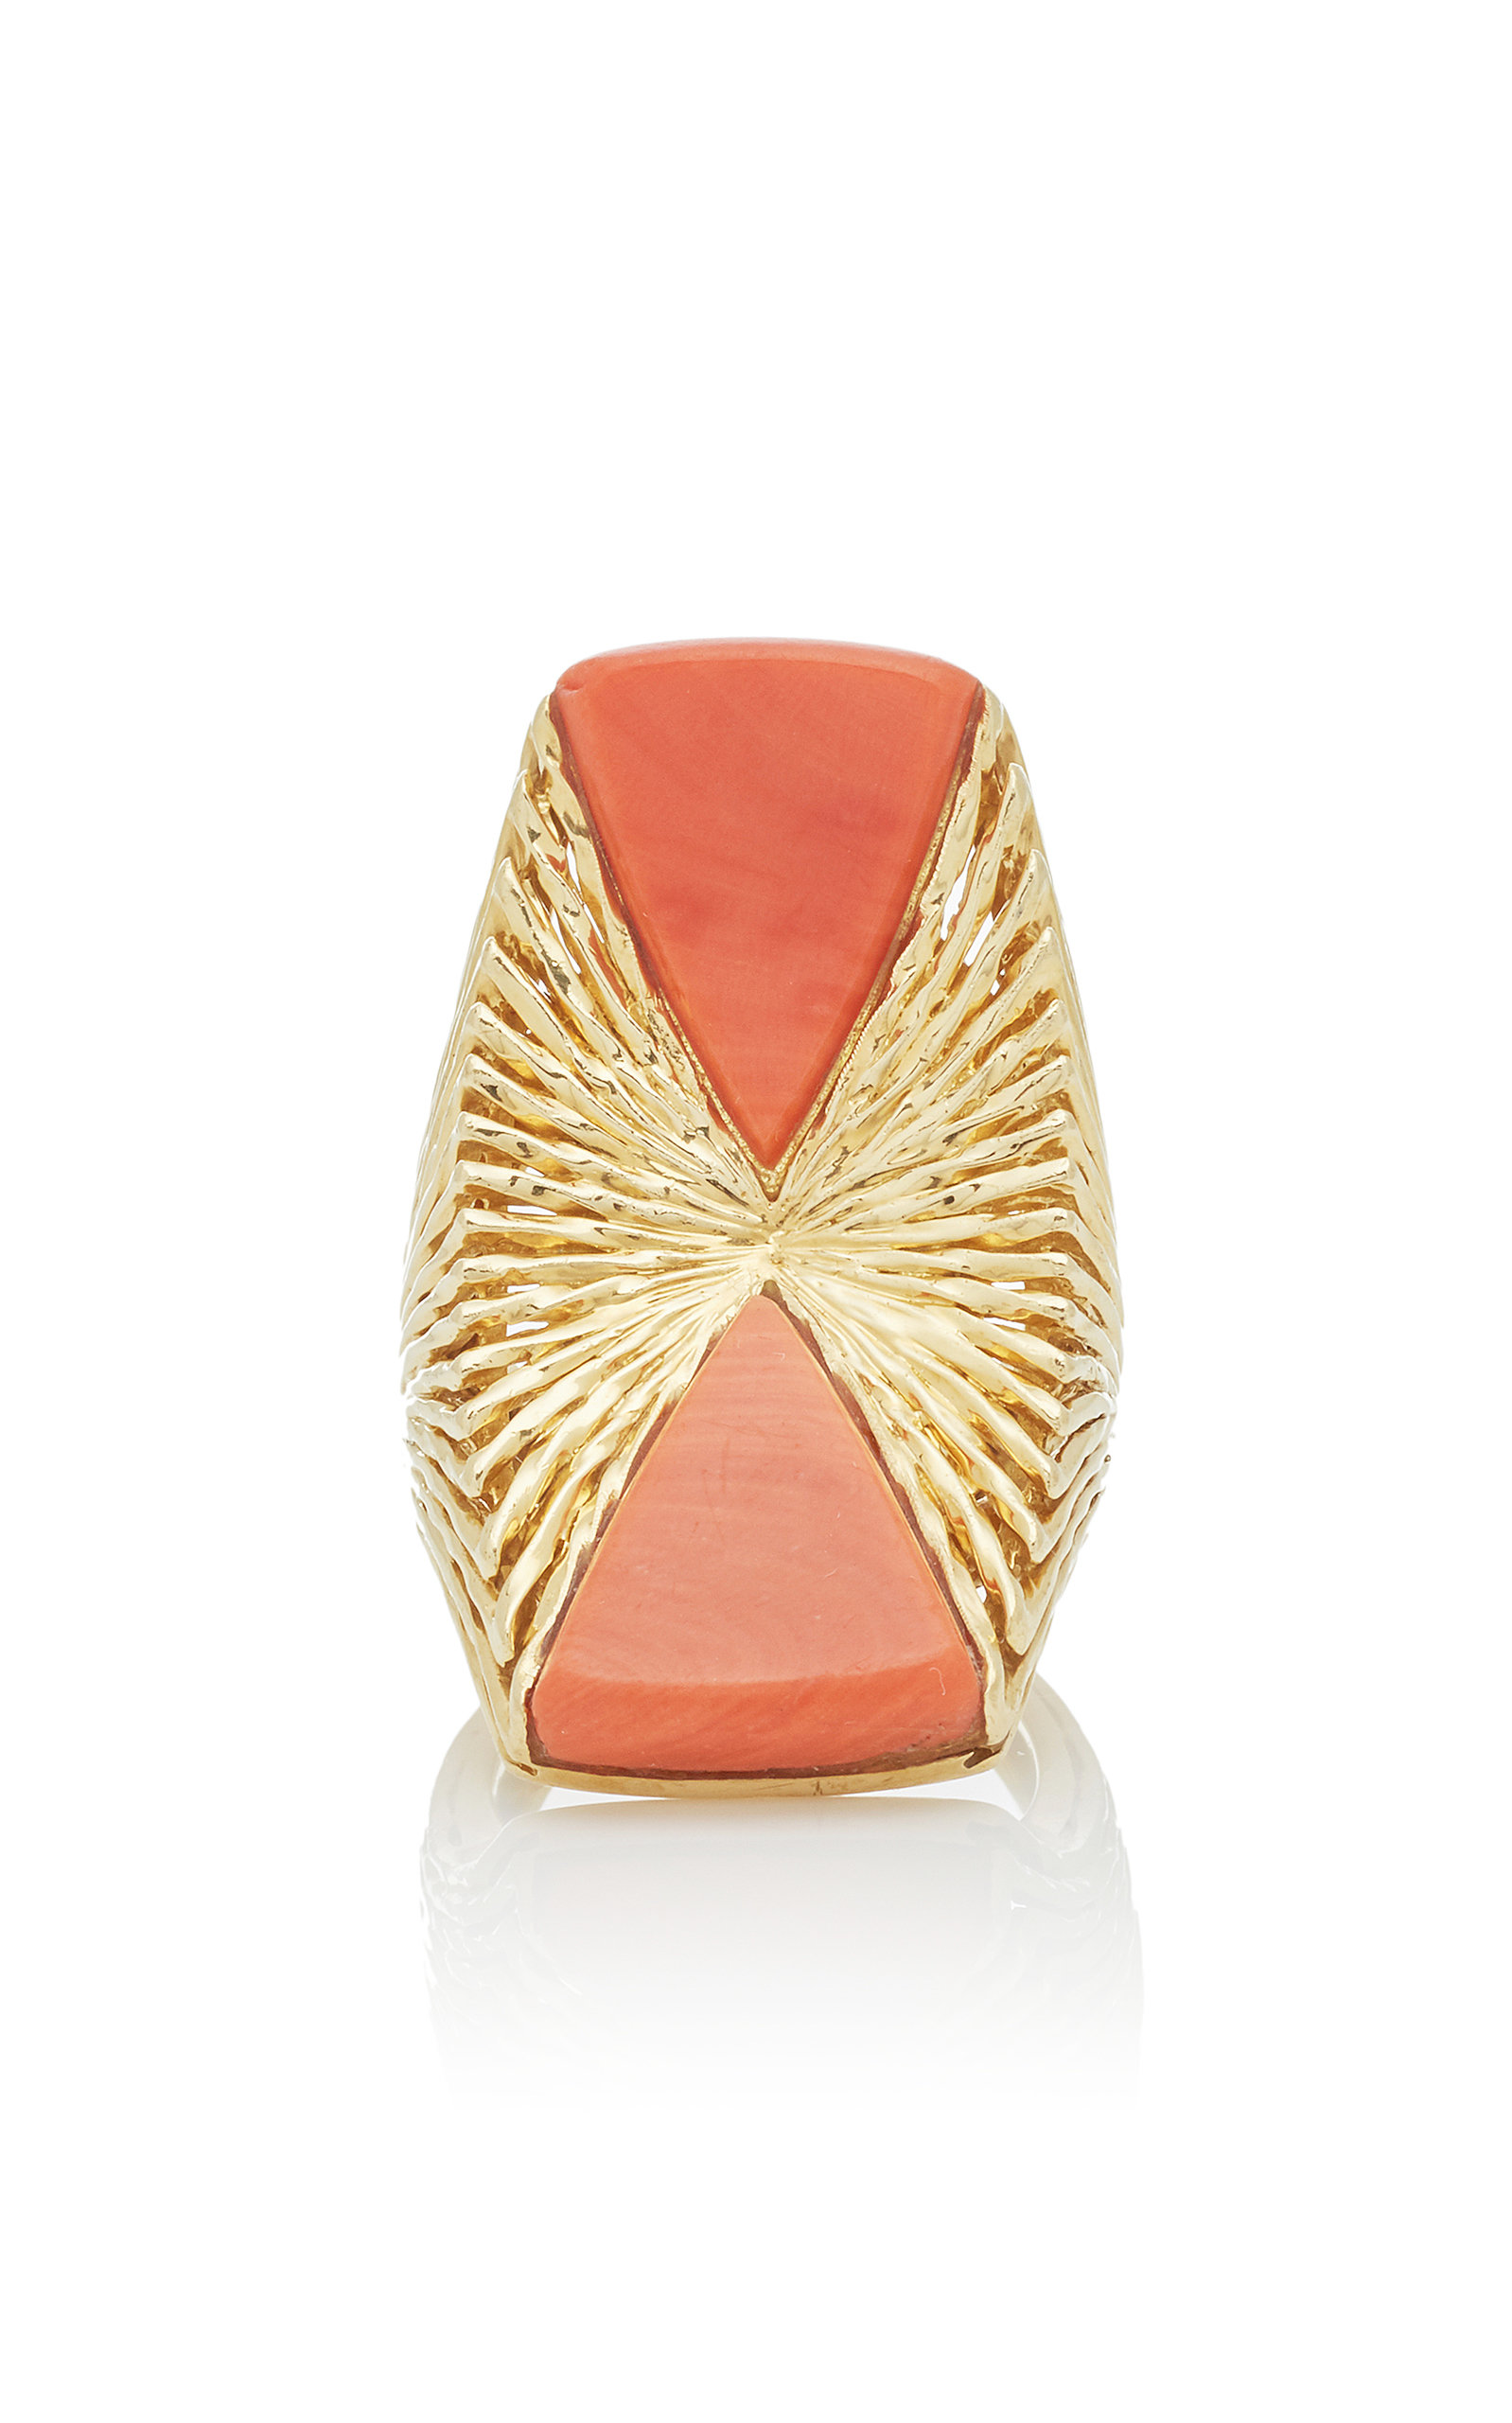 LIMITED EDITION CORAL AND TEXTURED 18K GOLD RING BY KUTCHINSKY C.1970